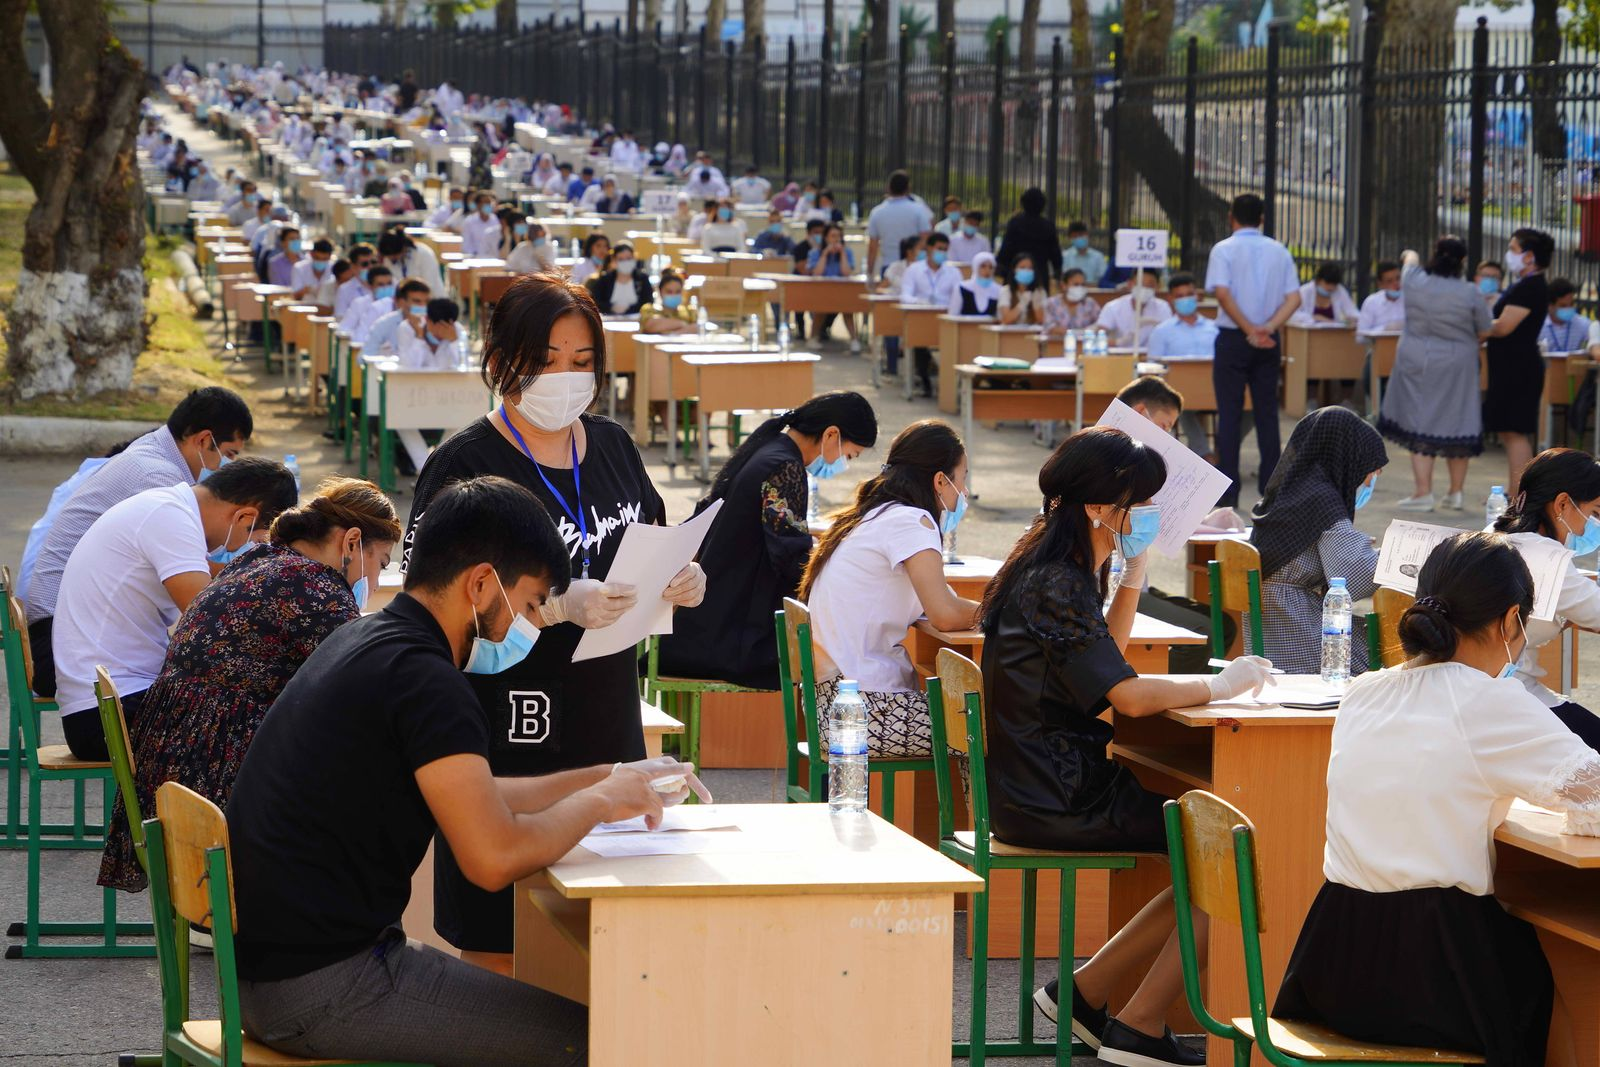 (200902) -- TASHKENT, Sept. 2, 2020 -- Students attend the university entrance examination at an outdoor exam site in Ta